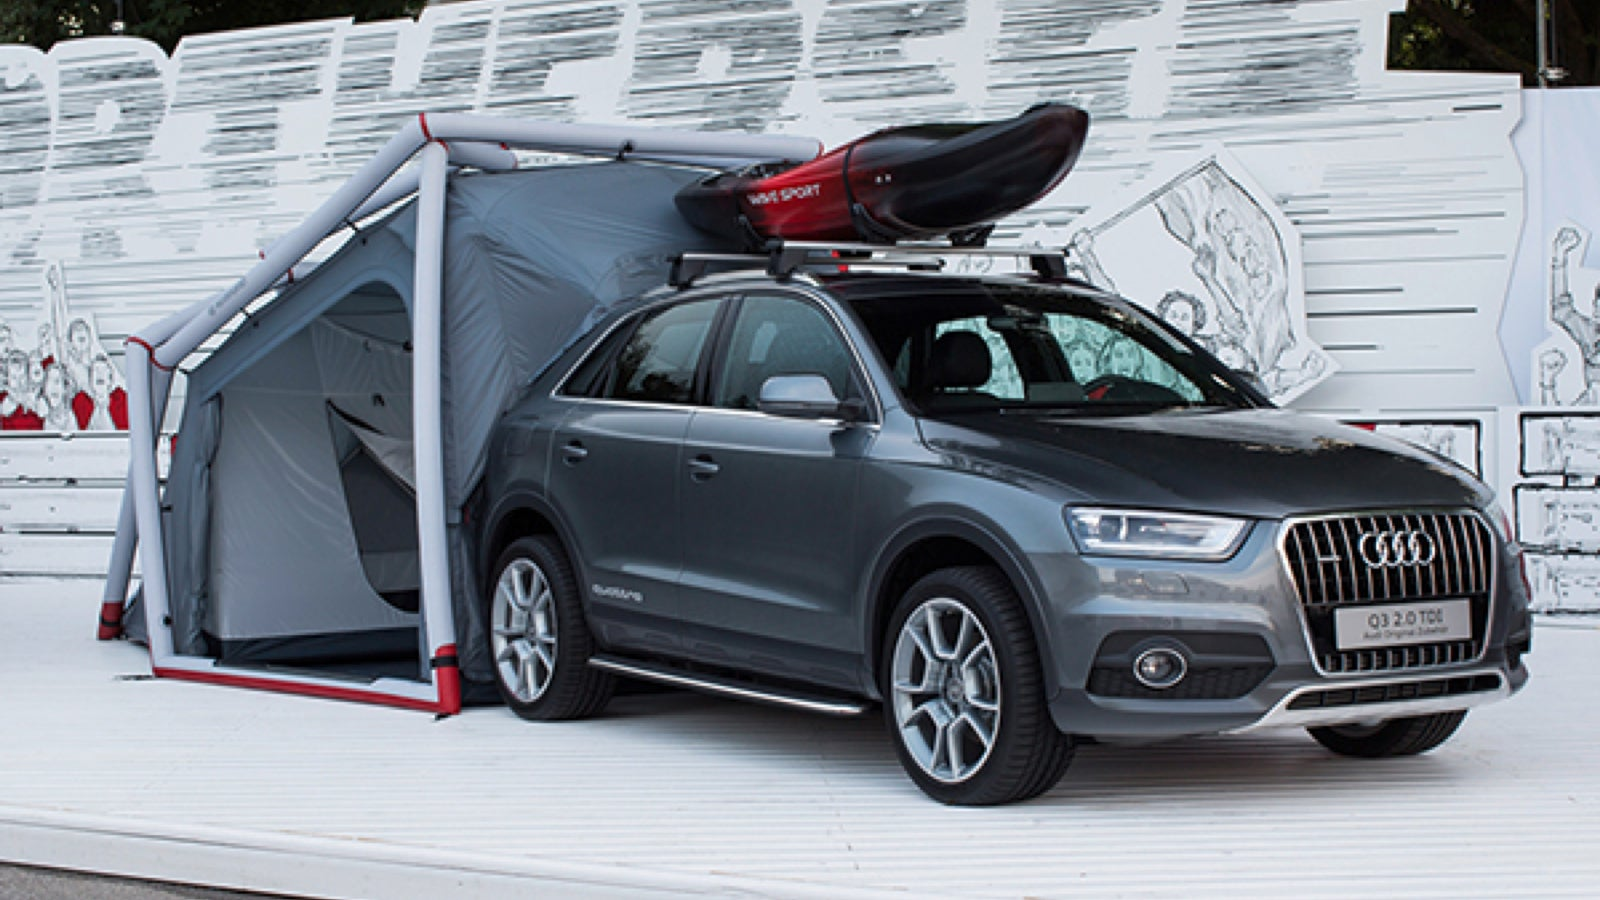 Want to go car c&ing with a crossover that wonu0027t go off-road? Sounds a little tricky but this matching tent will at least make c&ing out of your Audi ... & A Tent For Your Tiny Crossover